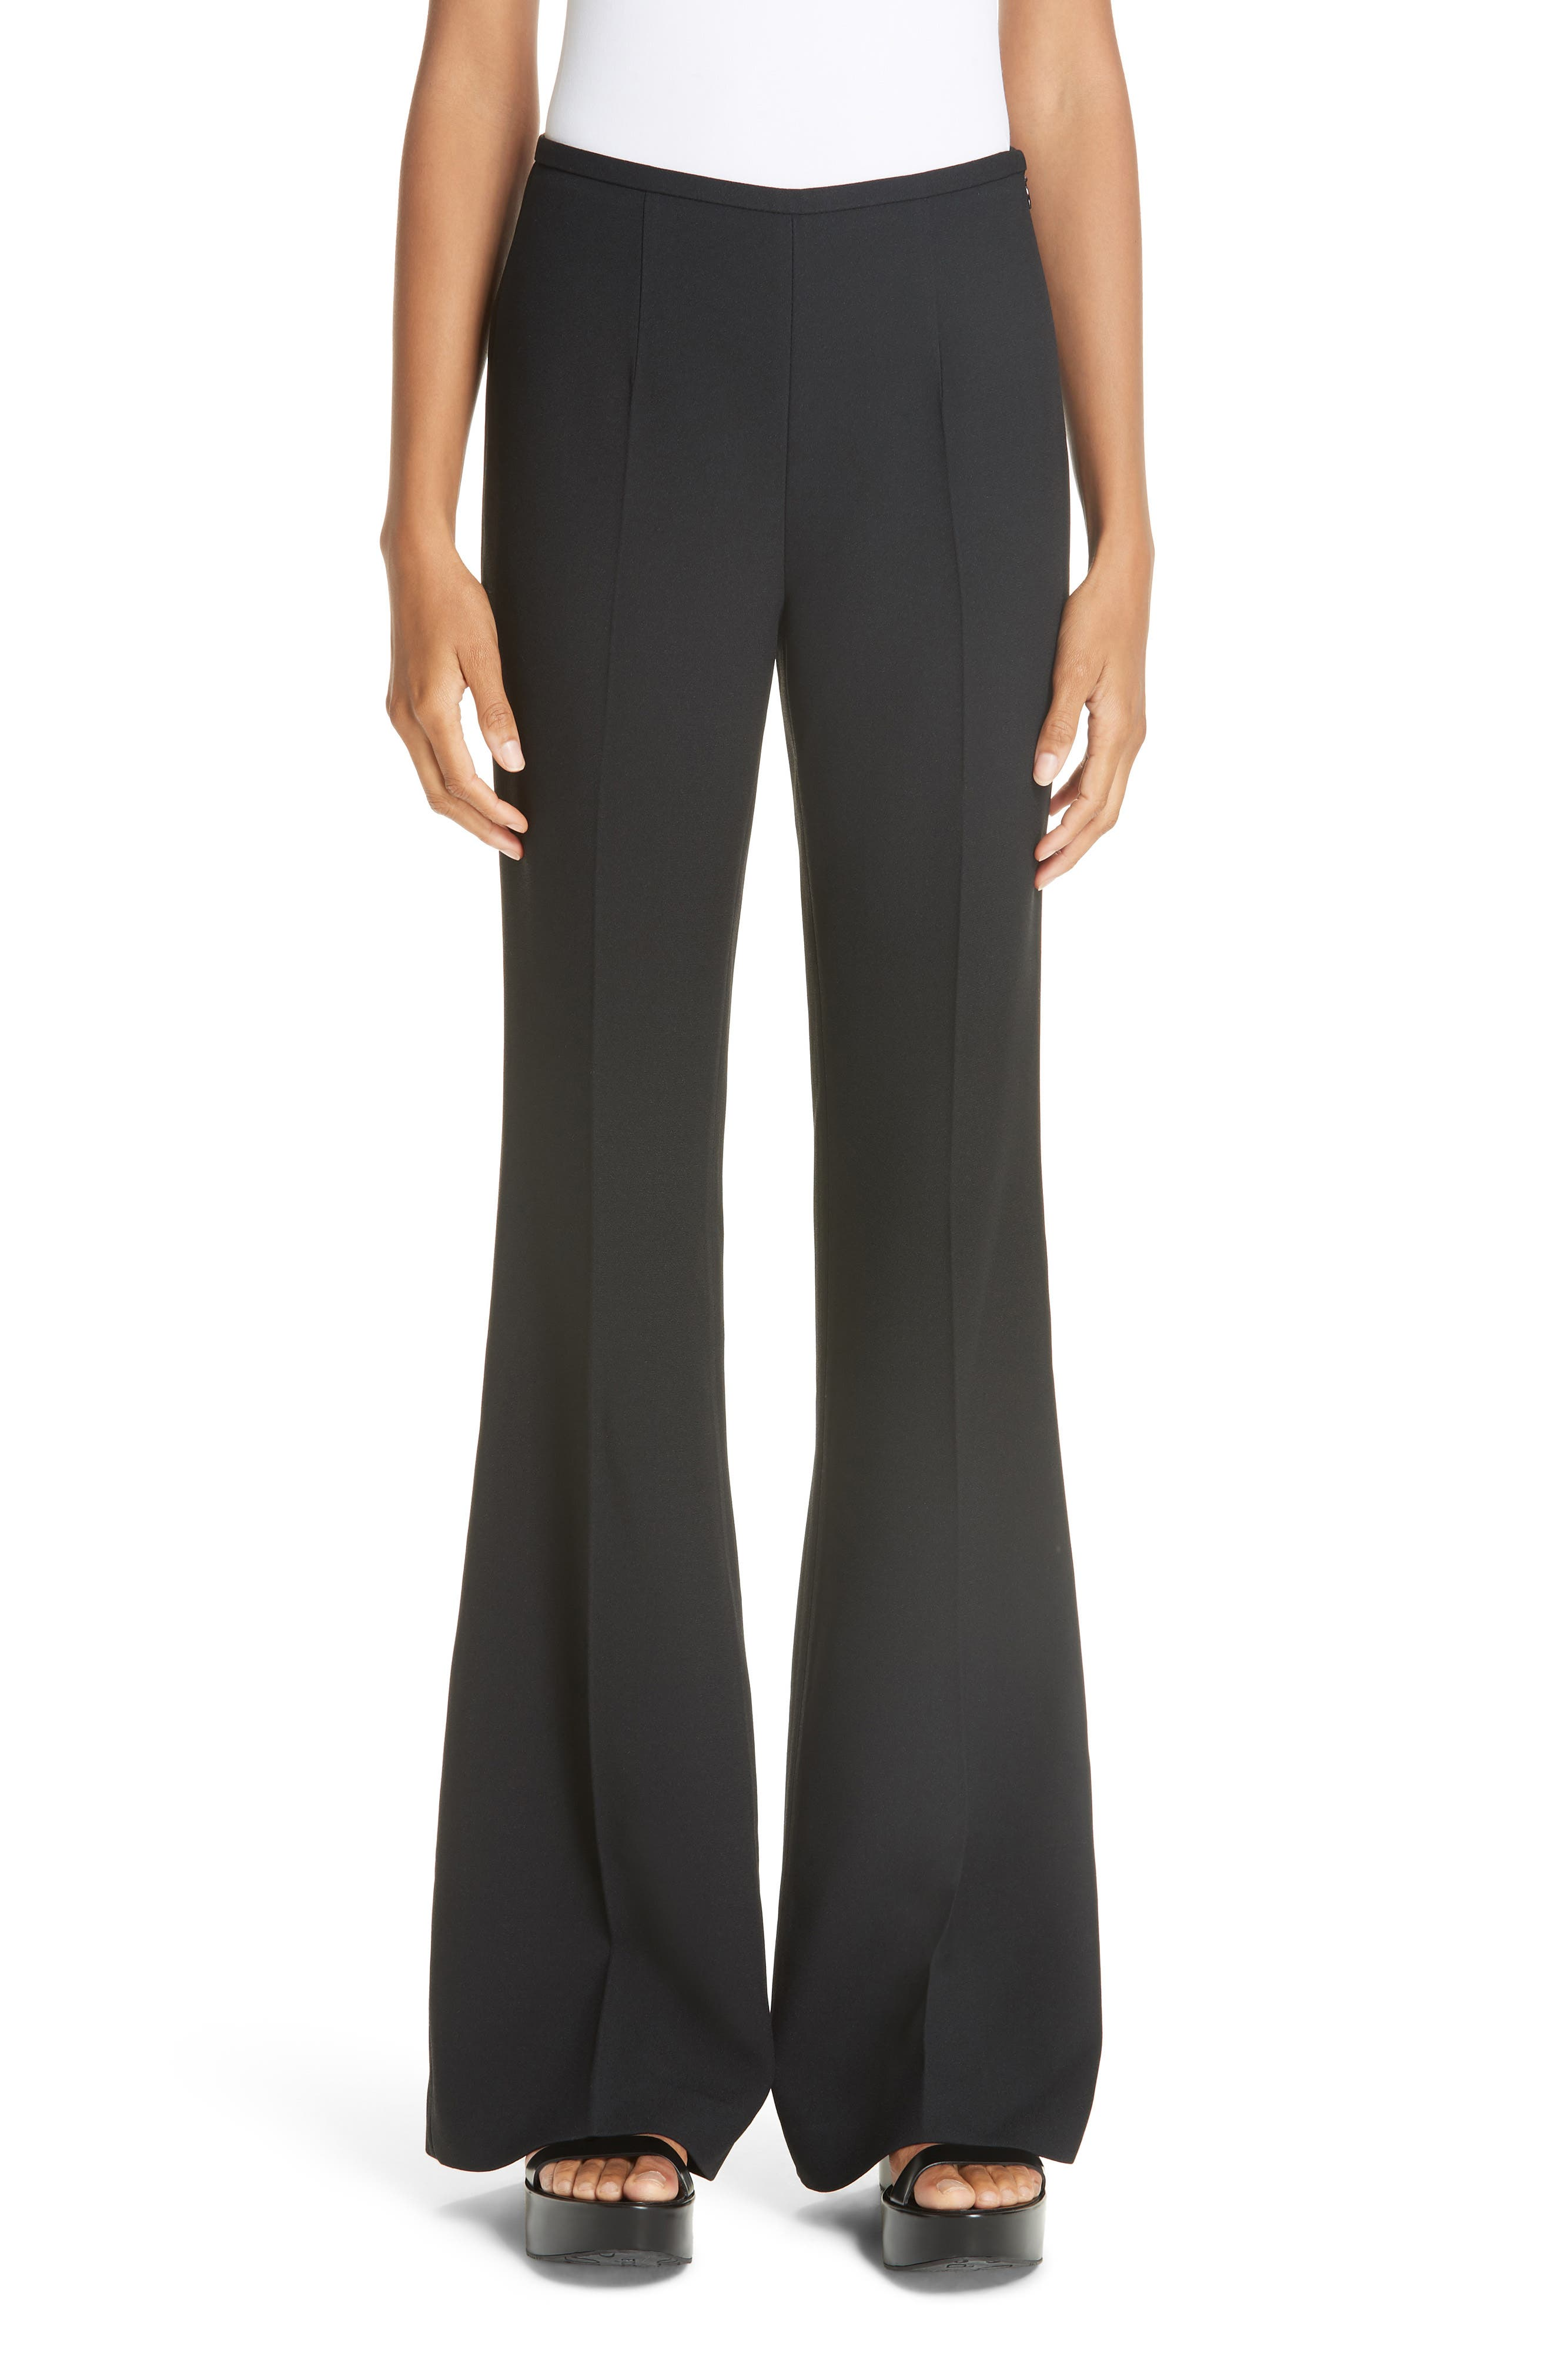 Michael Kors Double Crepe Sable Flare Leg Pants, Black